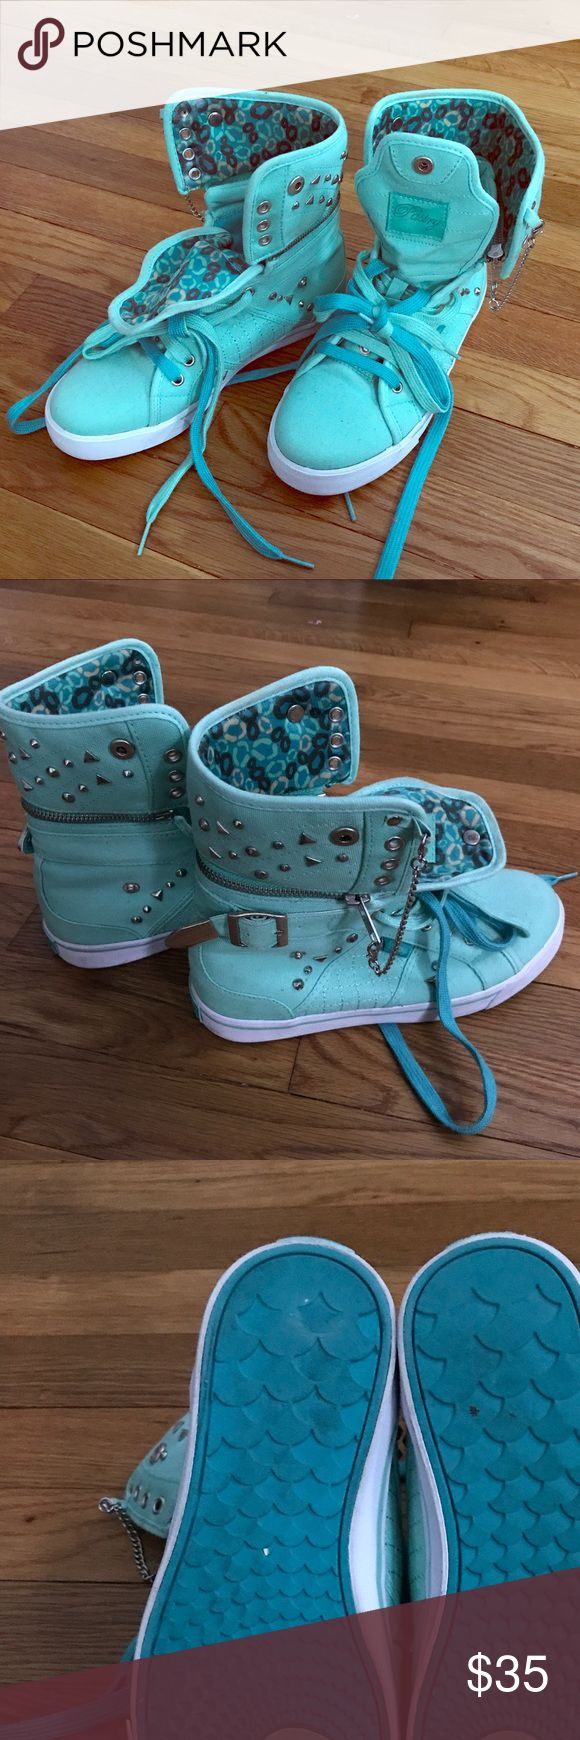 Pastry brand dance high tops Size 7 women's Pastry brand high tops, worn twice, like new! Turquoise with silver studs and zippers can be used for dance or fashion. Top part can zip off to be a low top. Pattern on the inside can be shown or hidden, very versatile. pastry Shoes Sneakers